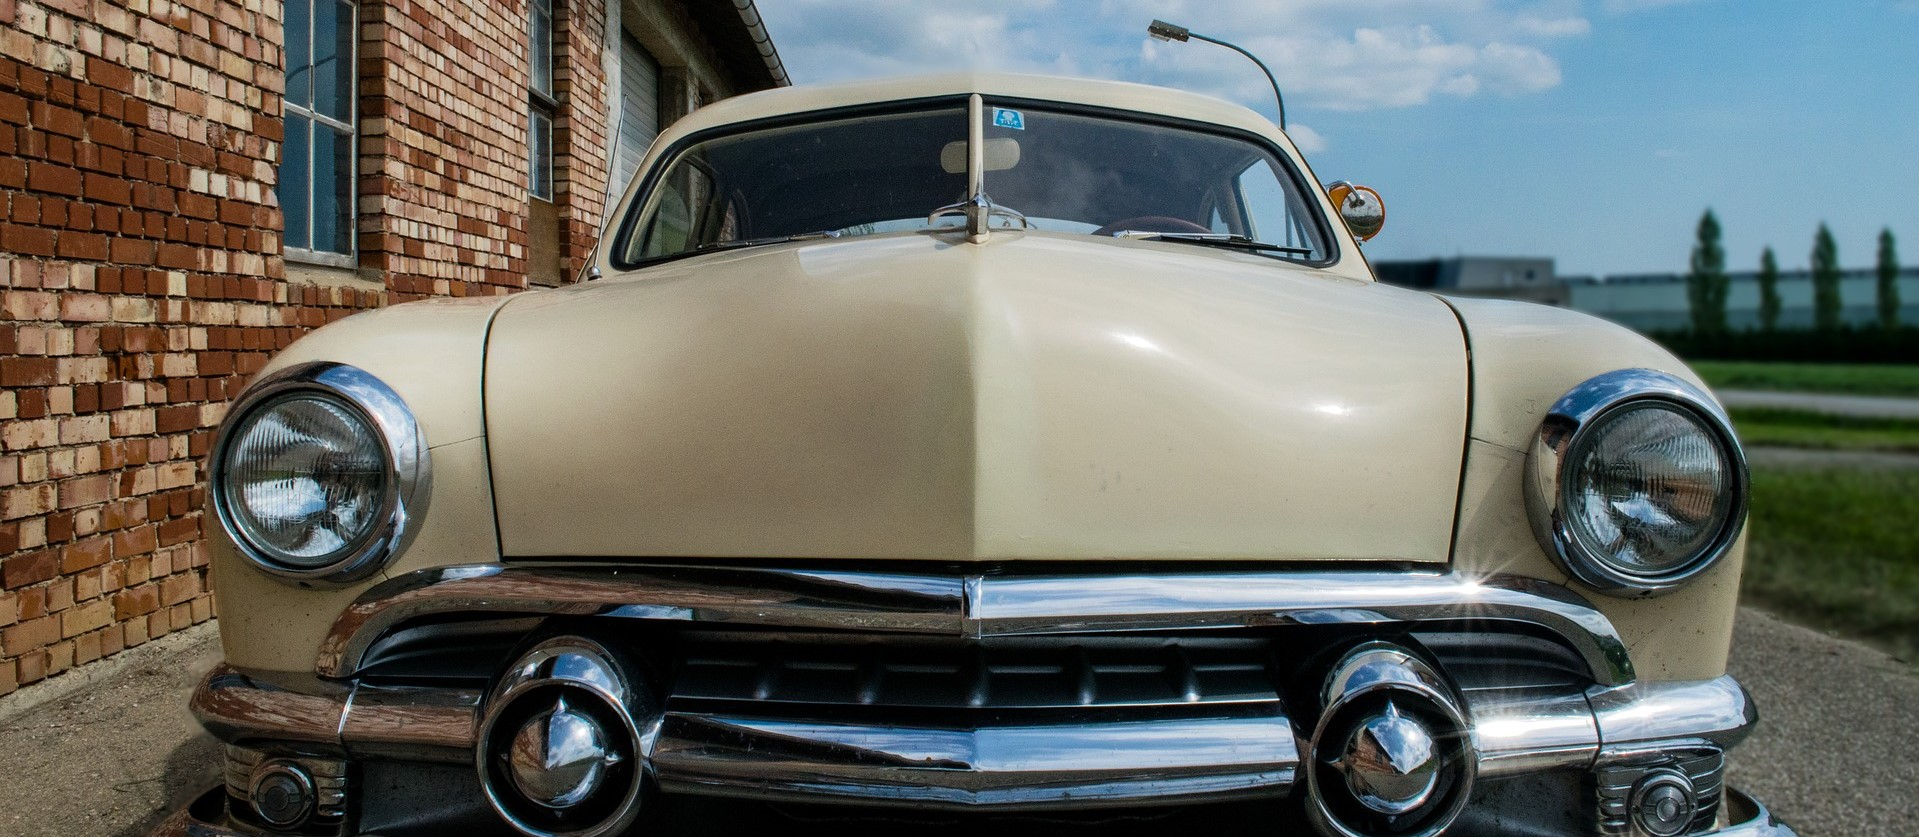 Oldtimer Car in Pensacola, Florida | Breast Cancer Car Donations